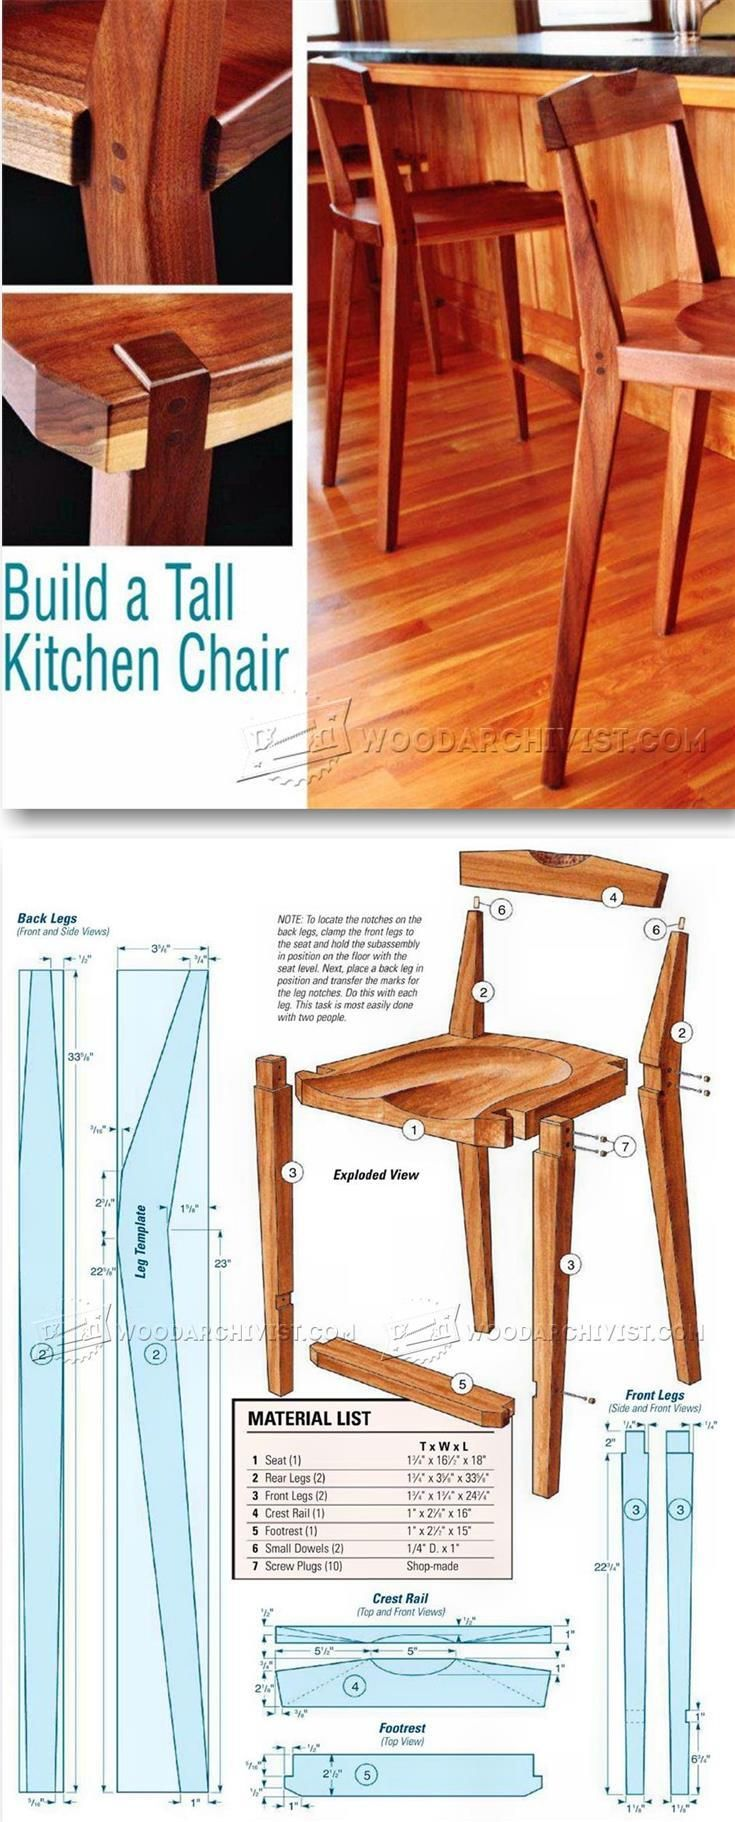 Modern Wood Furniture Plans best 25+ furniture plans ideas on pinterest | wood projects